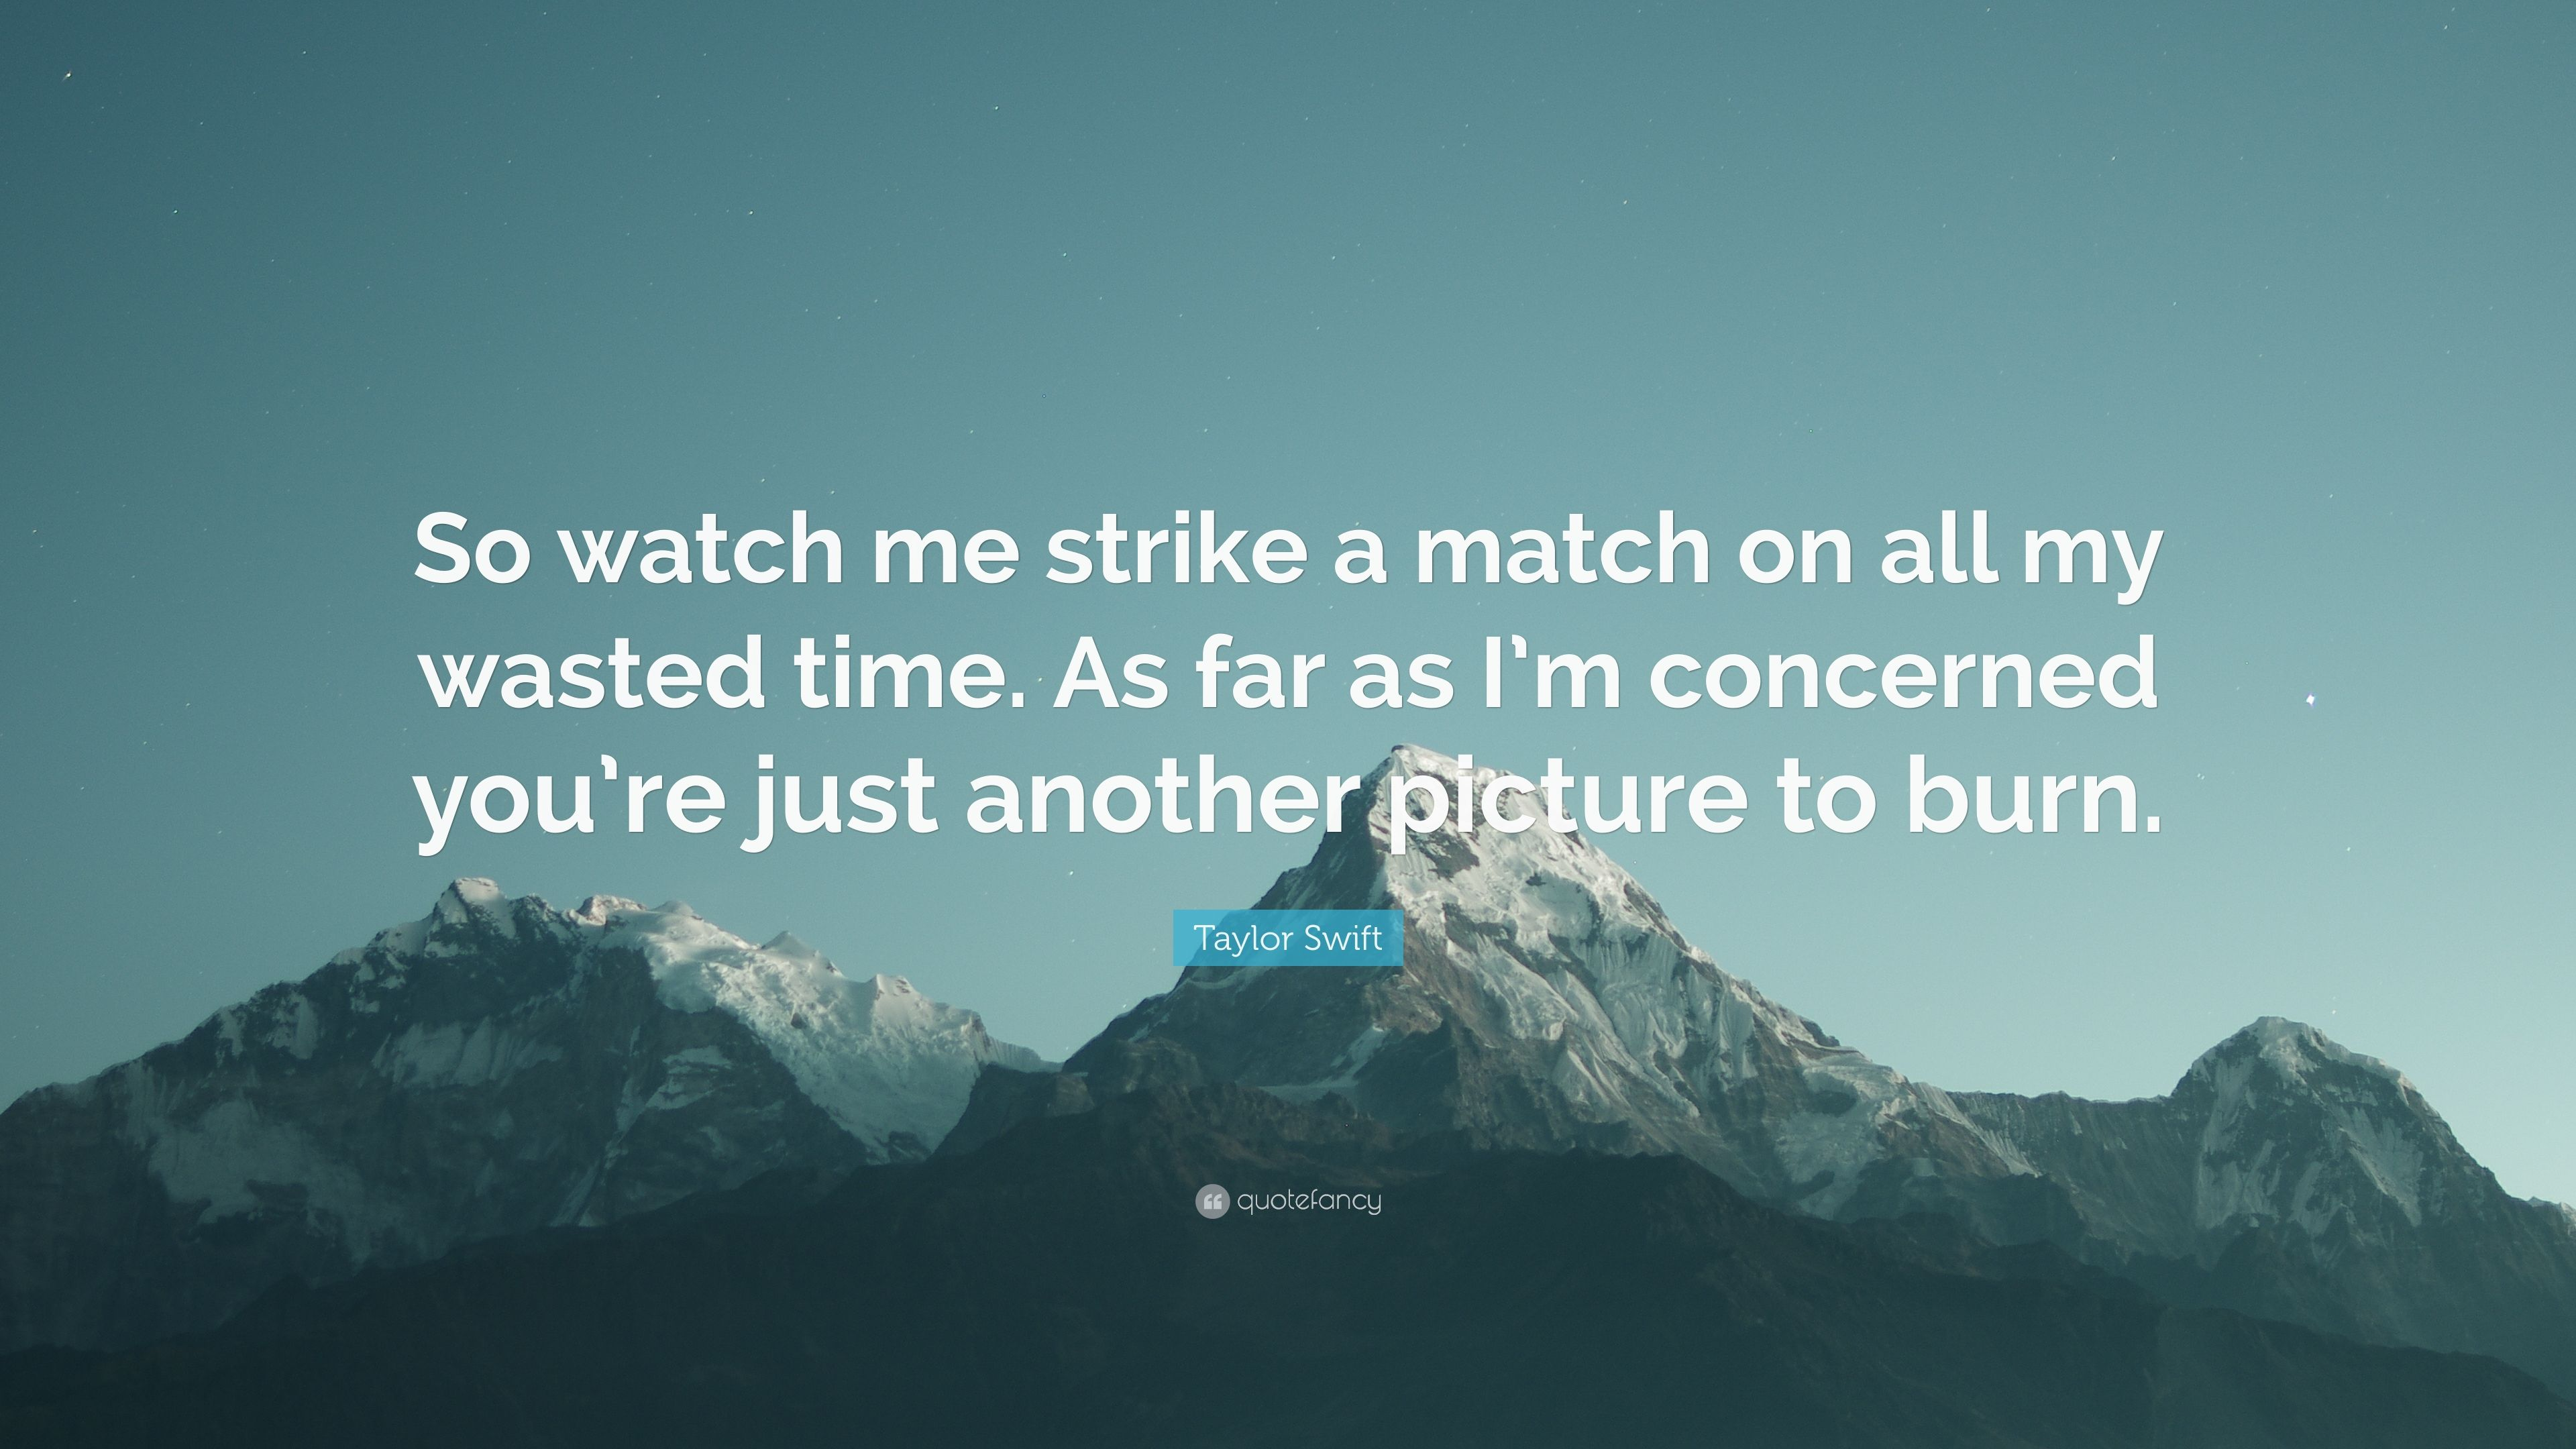 Taylor Swift Quote So Watch Me Strike A Match On All My Wasted Time As Far As I M Concerned You Re Just Another Picture To Burn 12 Wallpapers Quotefancy